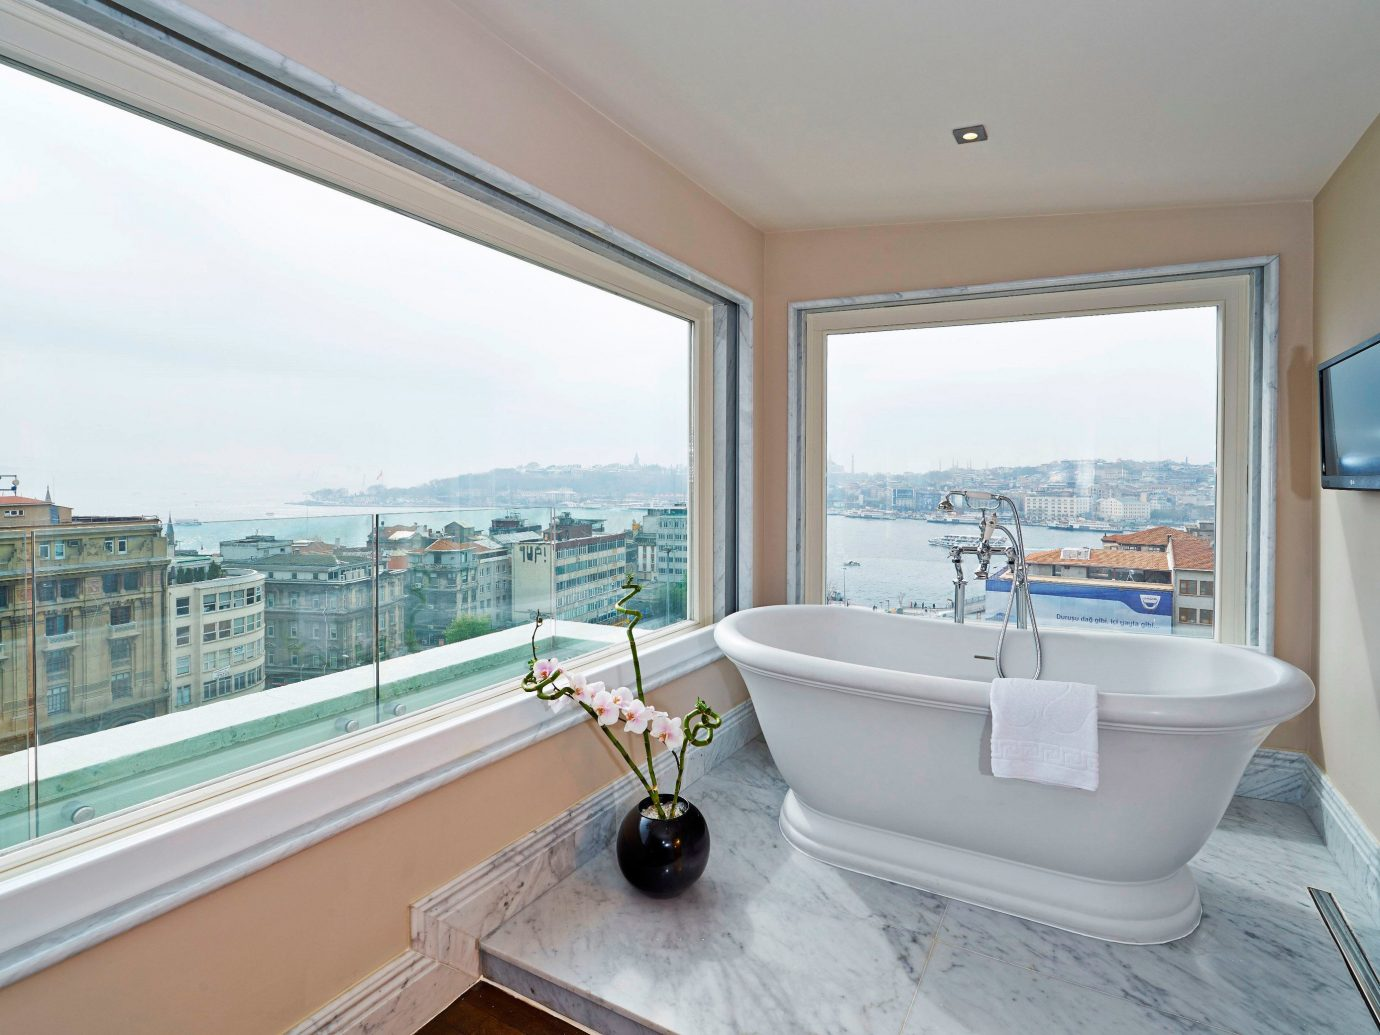 Boutique Hotels Hotels Luxury Travel window indoor room property swimming pool estate real estate home condominium interior design floor bathtub bathroom Villa daylighting apartment Suite tub furniture